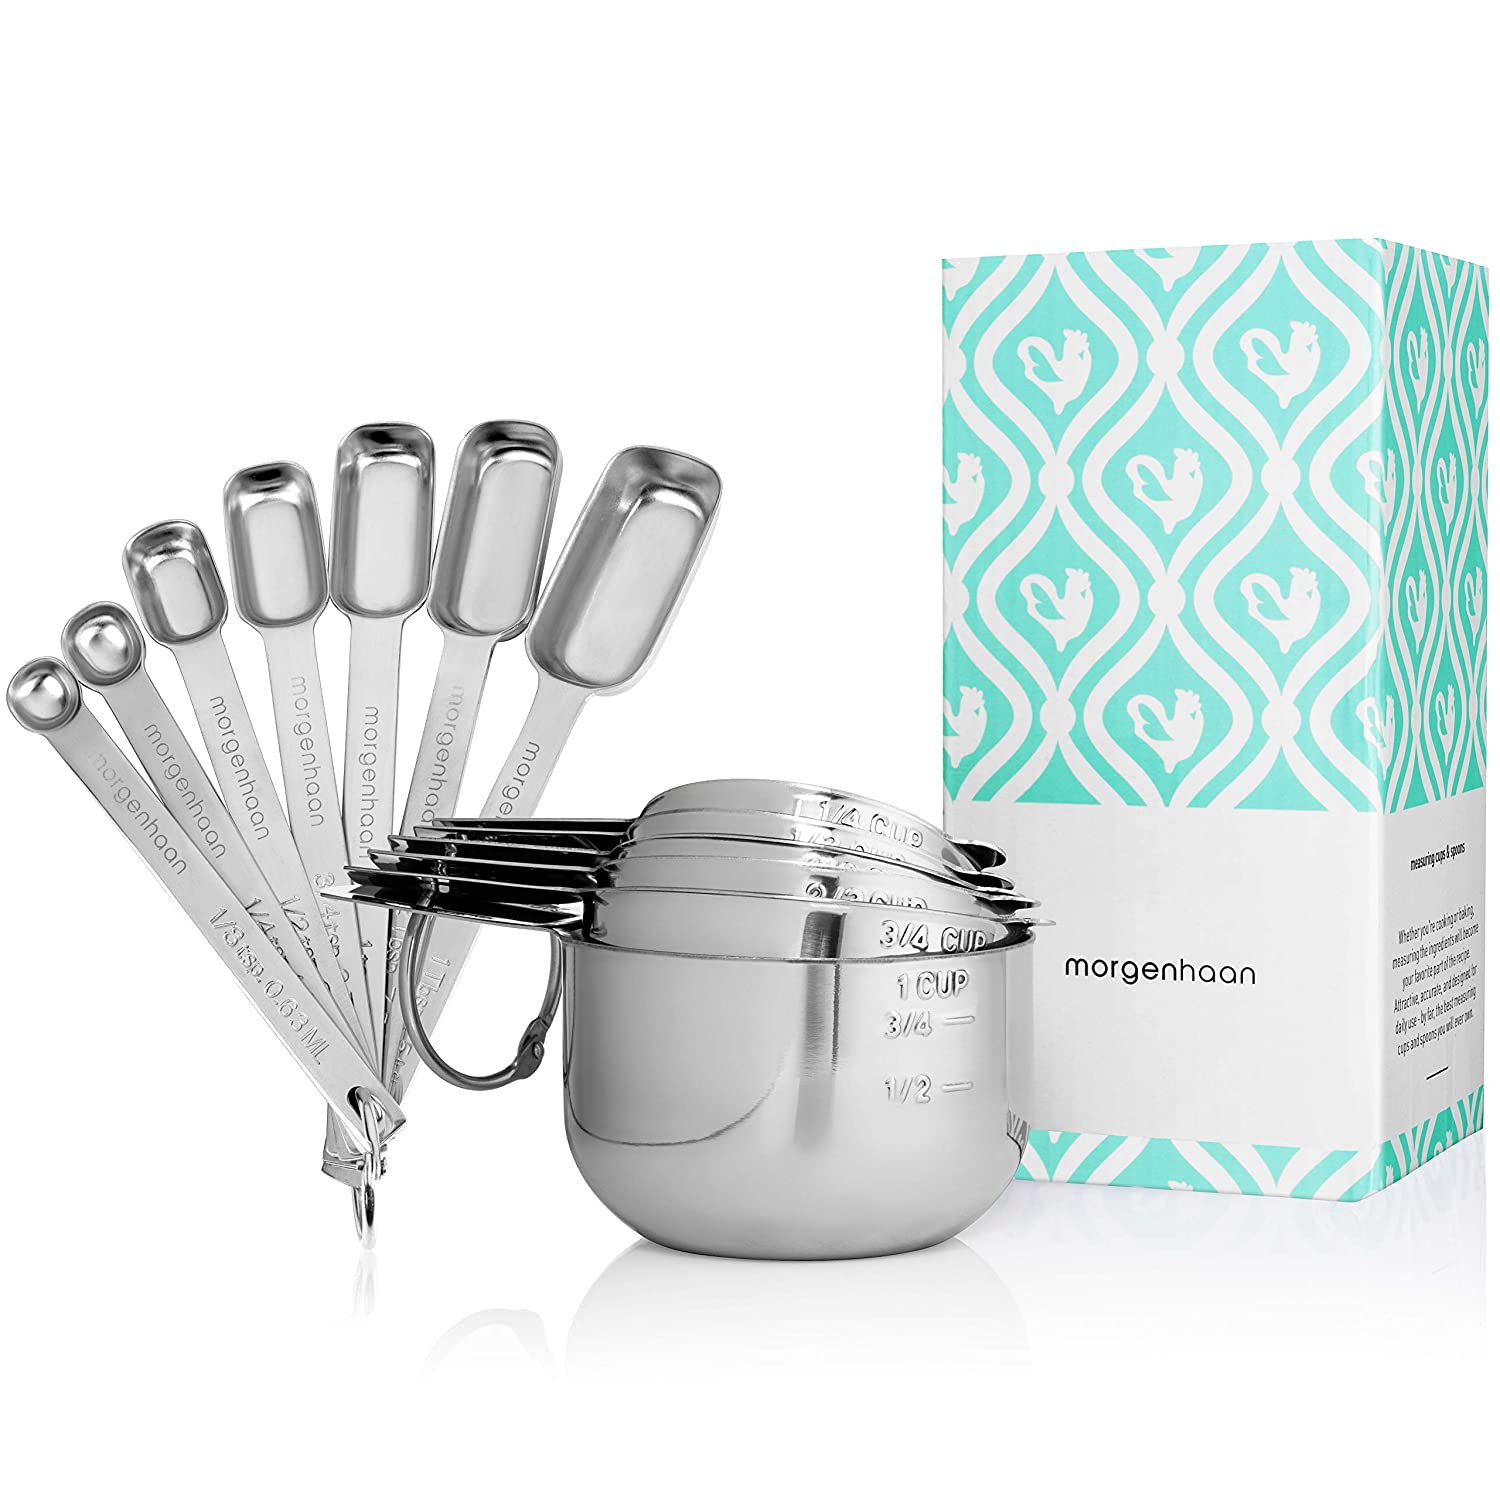 Stainless steel measuring cups and spoons set of 13 pieces durable elegant all in one kitchen measuring set for dry and liquid ingredients 7 stackable